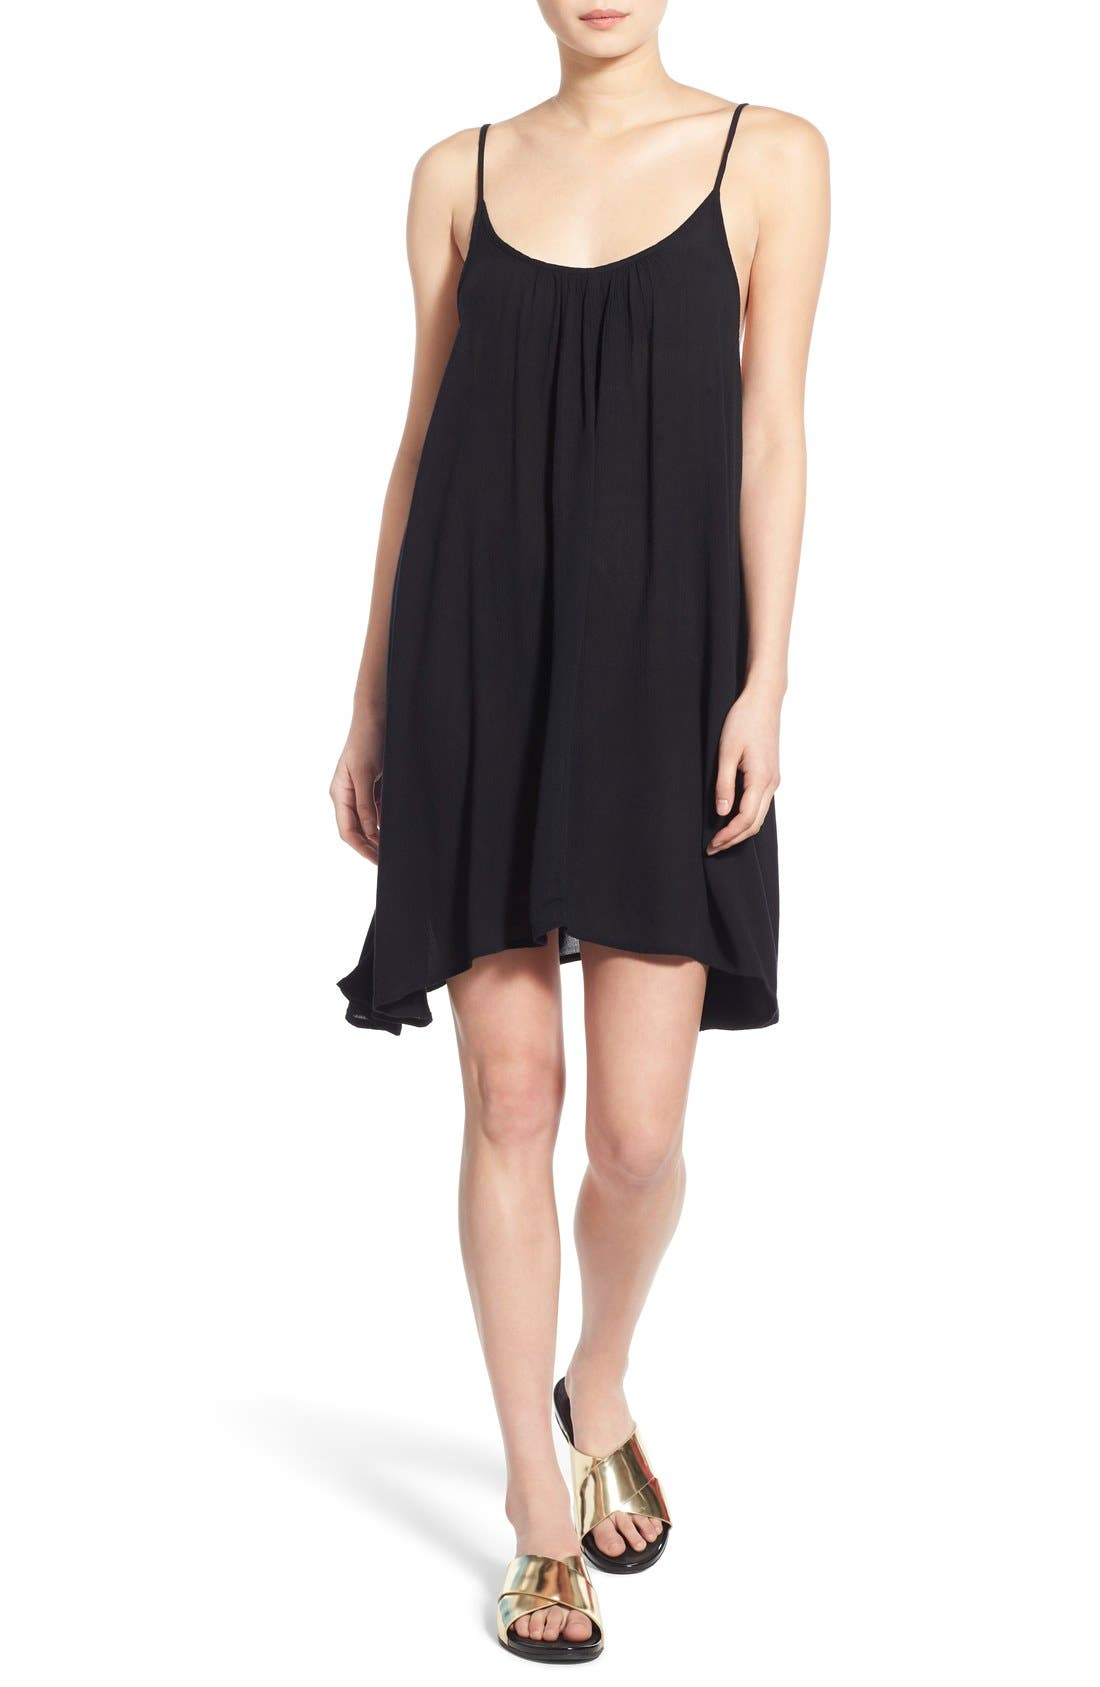 Roxy 'Windy' Scoop Neck Shift Dress